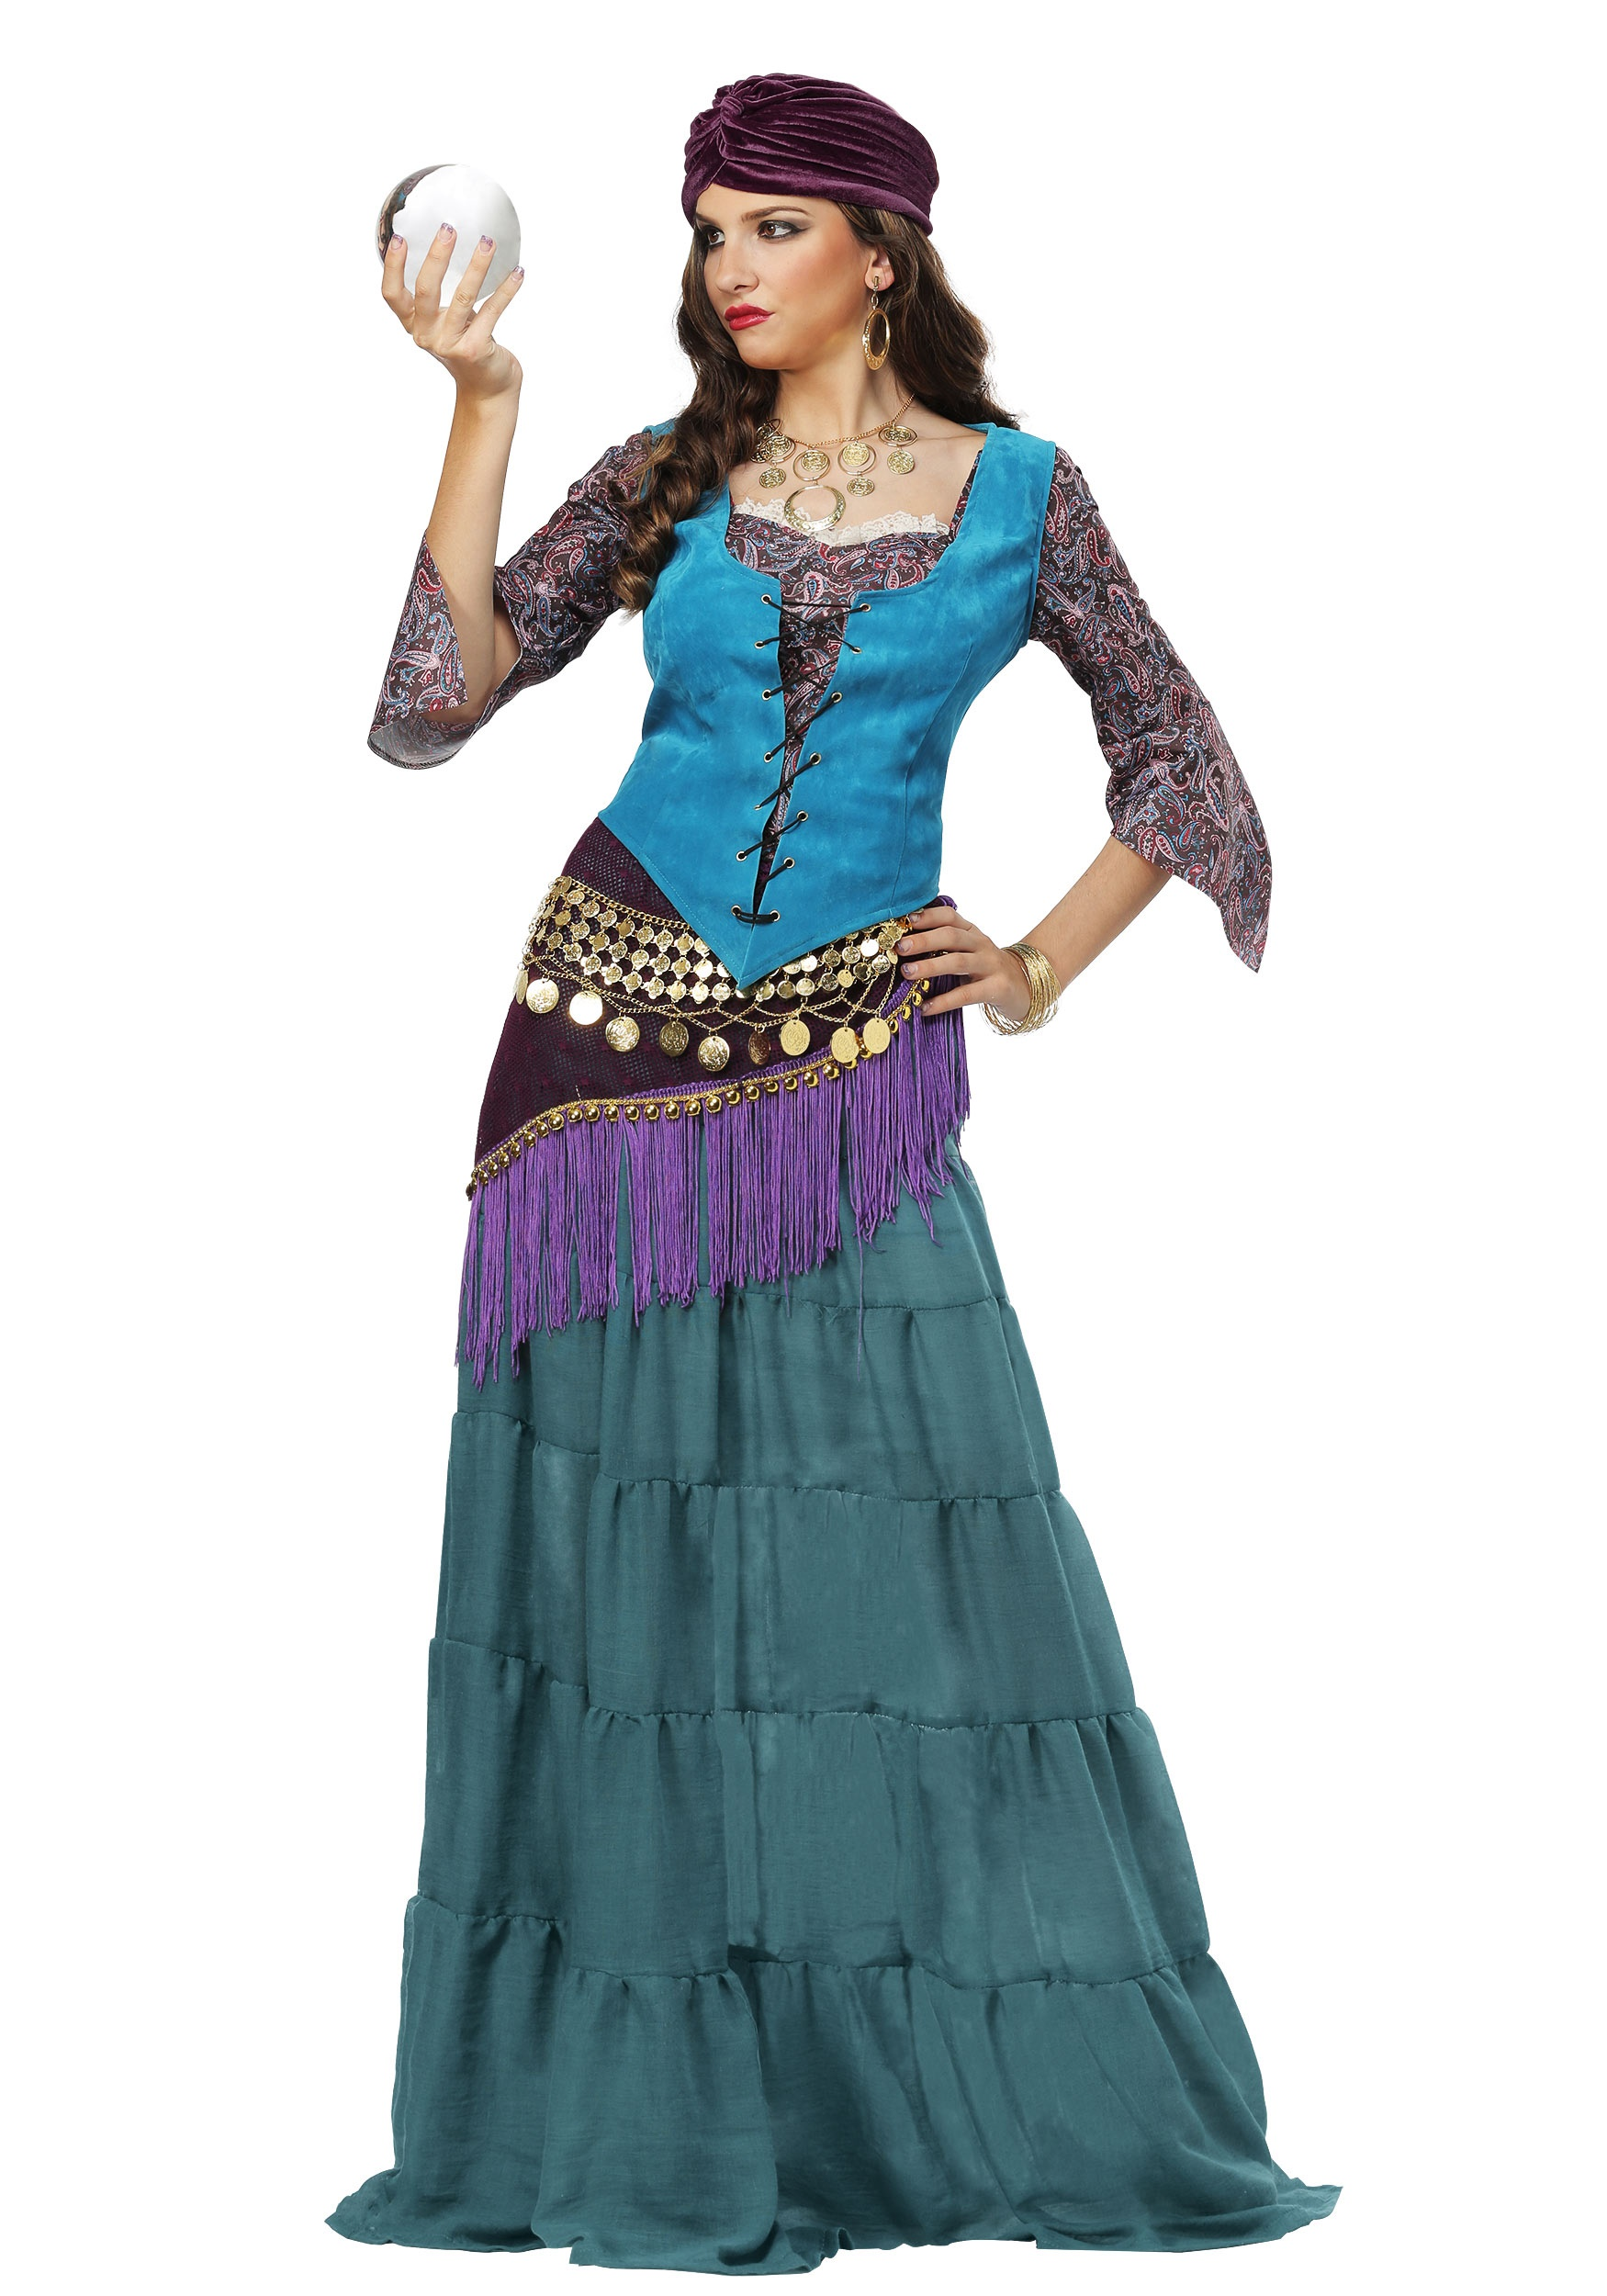 Fortune Teller Booth Halloween Craft: Fabulous Fortune Teller Gypsy Costume For Women